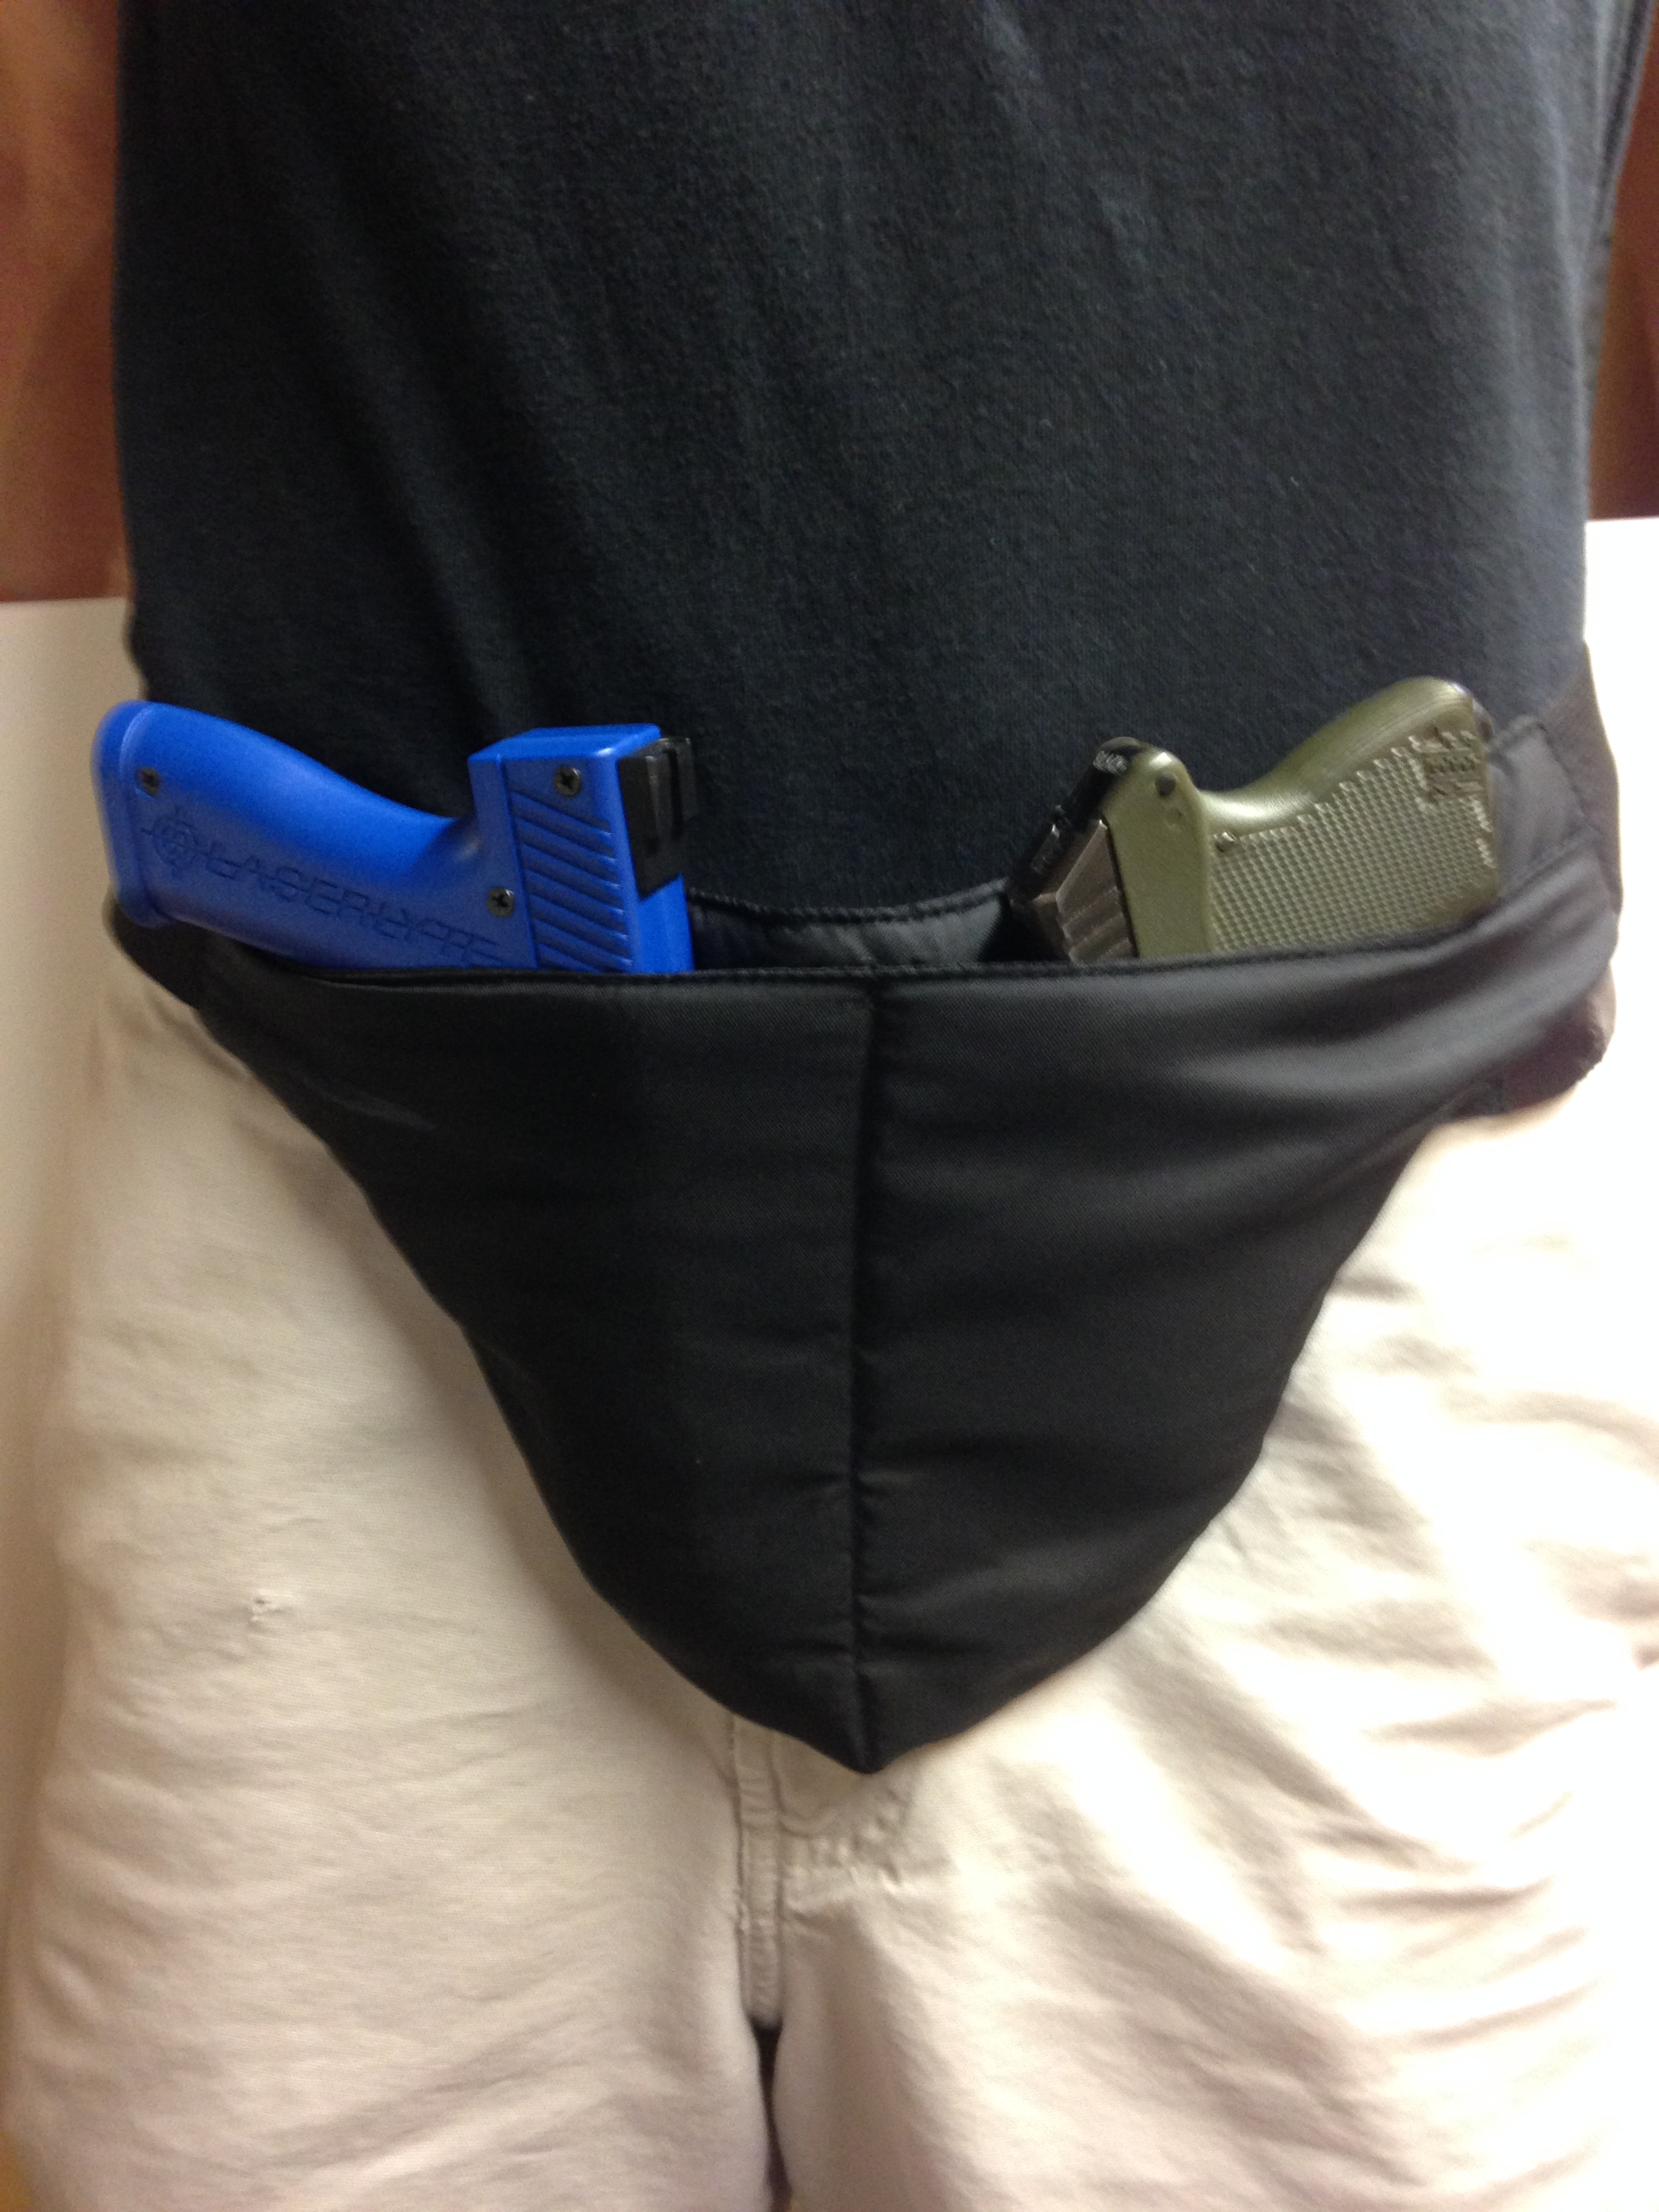 Deep Concealed Crotch Carry Holster